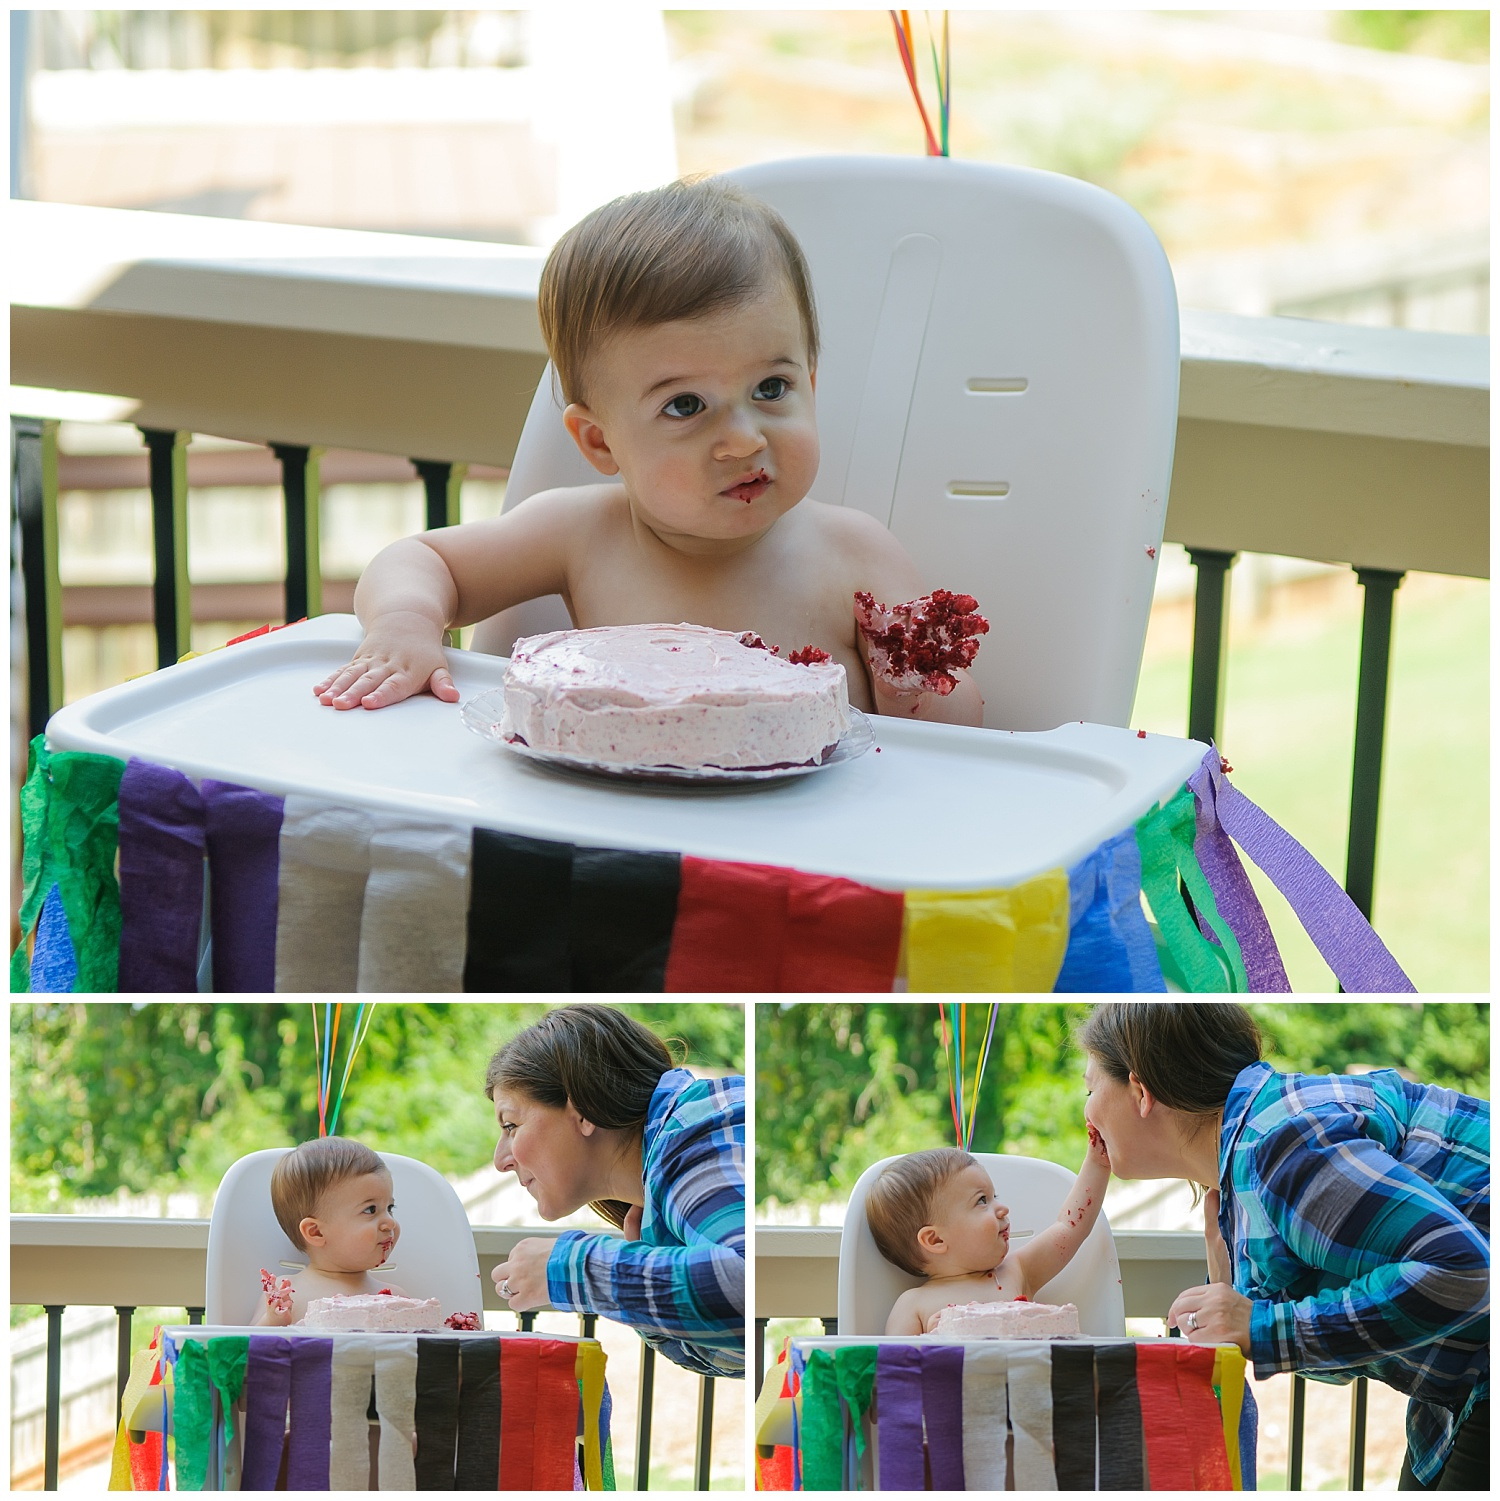 these are images of a one year old at a one year old cake smash birthday party in marietta, georgia. the child is feeding himself and he has cake all over his hands and face.